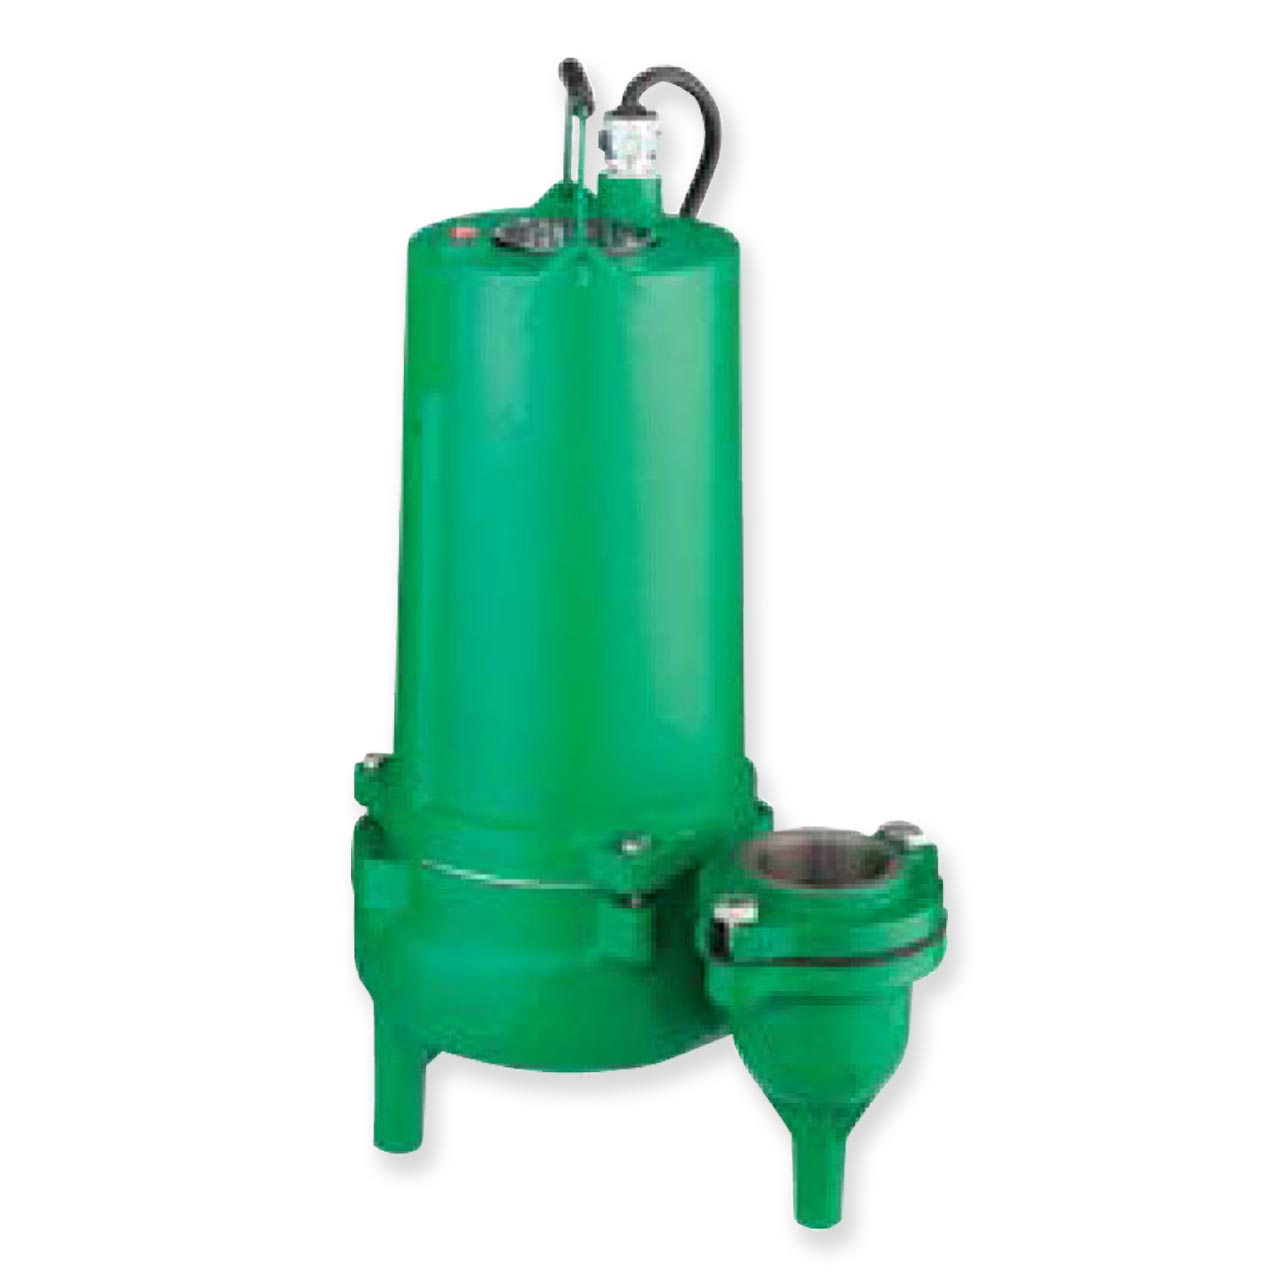 hight resolution of myers myers mskhs200m2 submersible sewage pump 2 hp 230v 1ph manual 30 cord